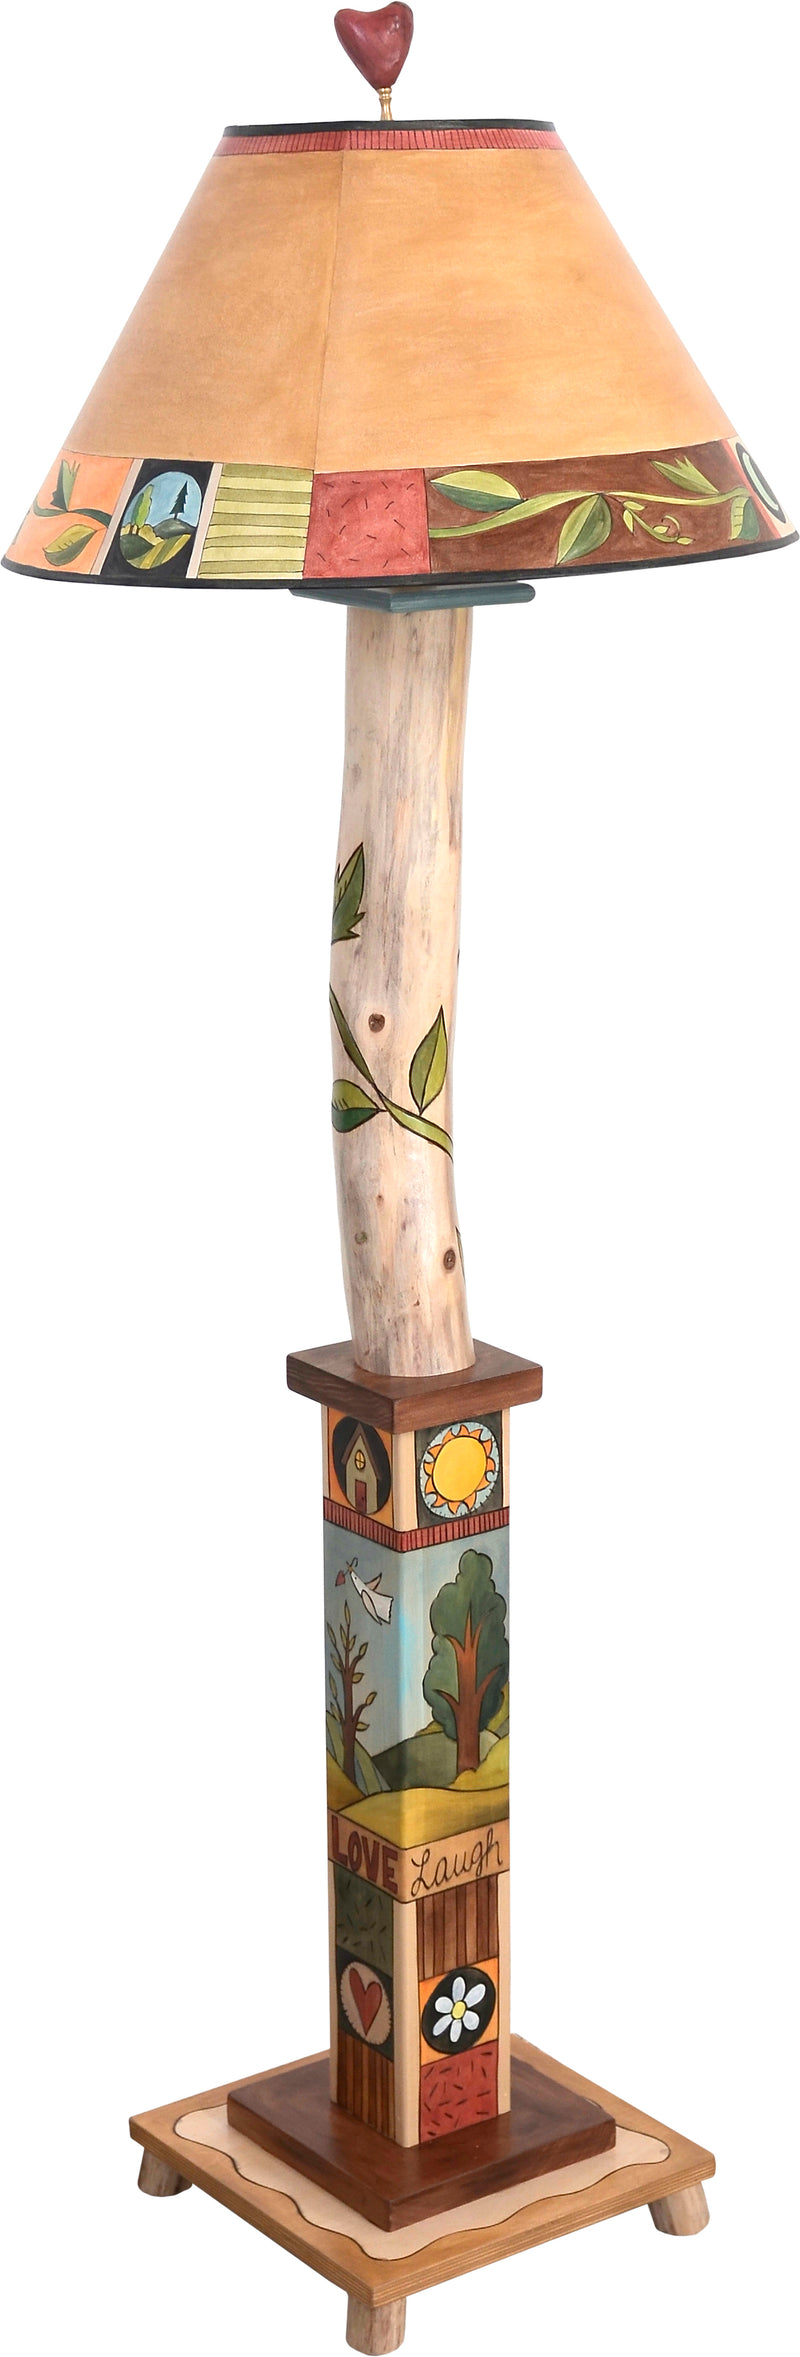 Box and Log Floor Lamp –  Beautiful folk art floor lamp with vine motifs and landscapes